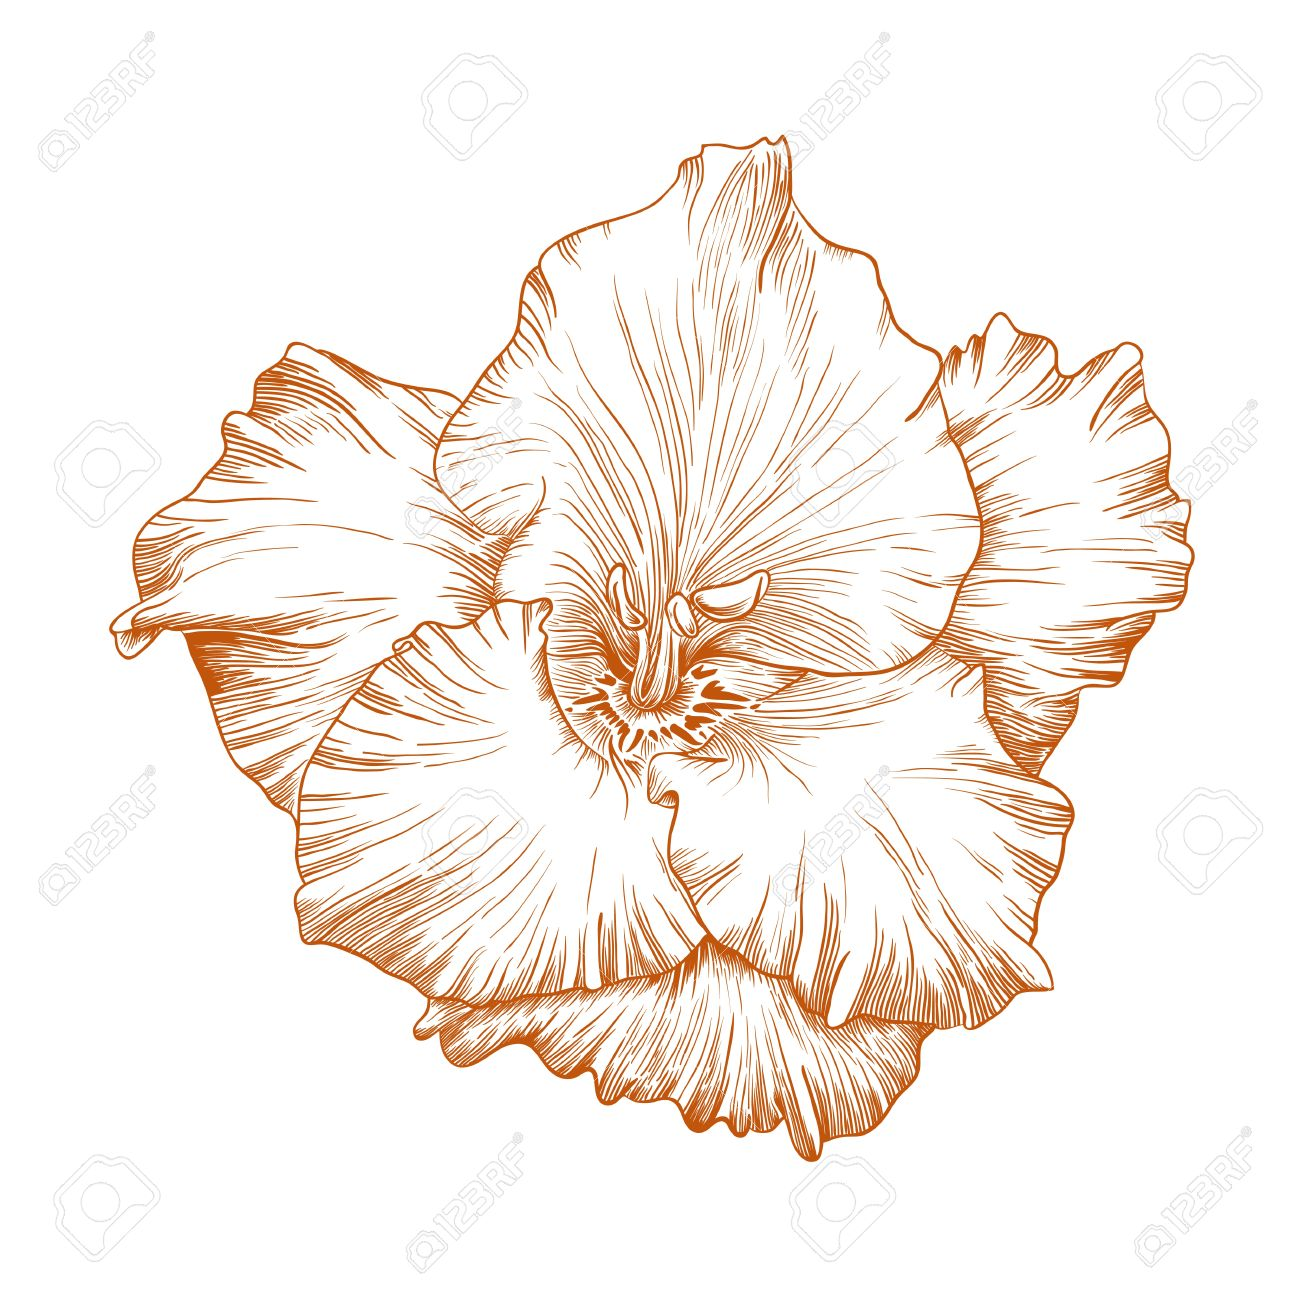 Gladiolus clipart #4, Download drawings